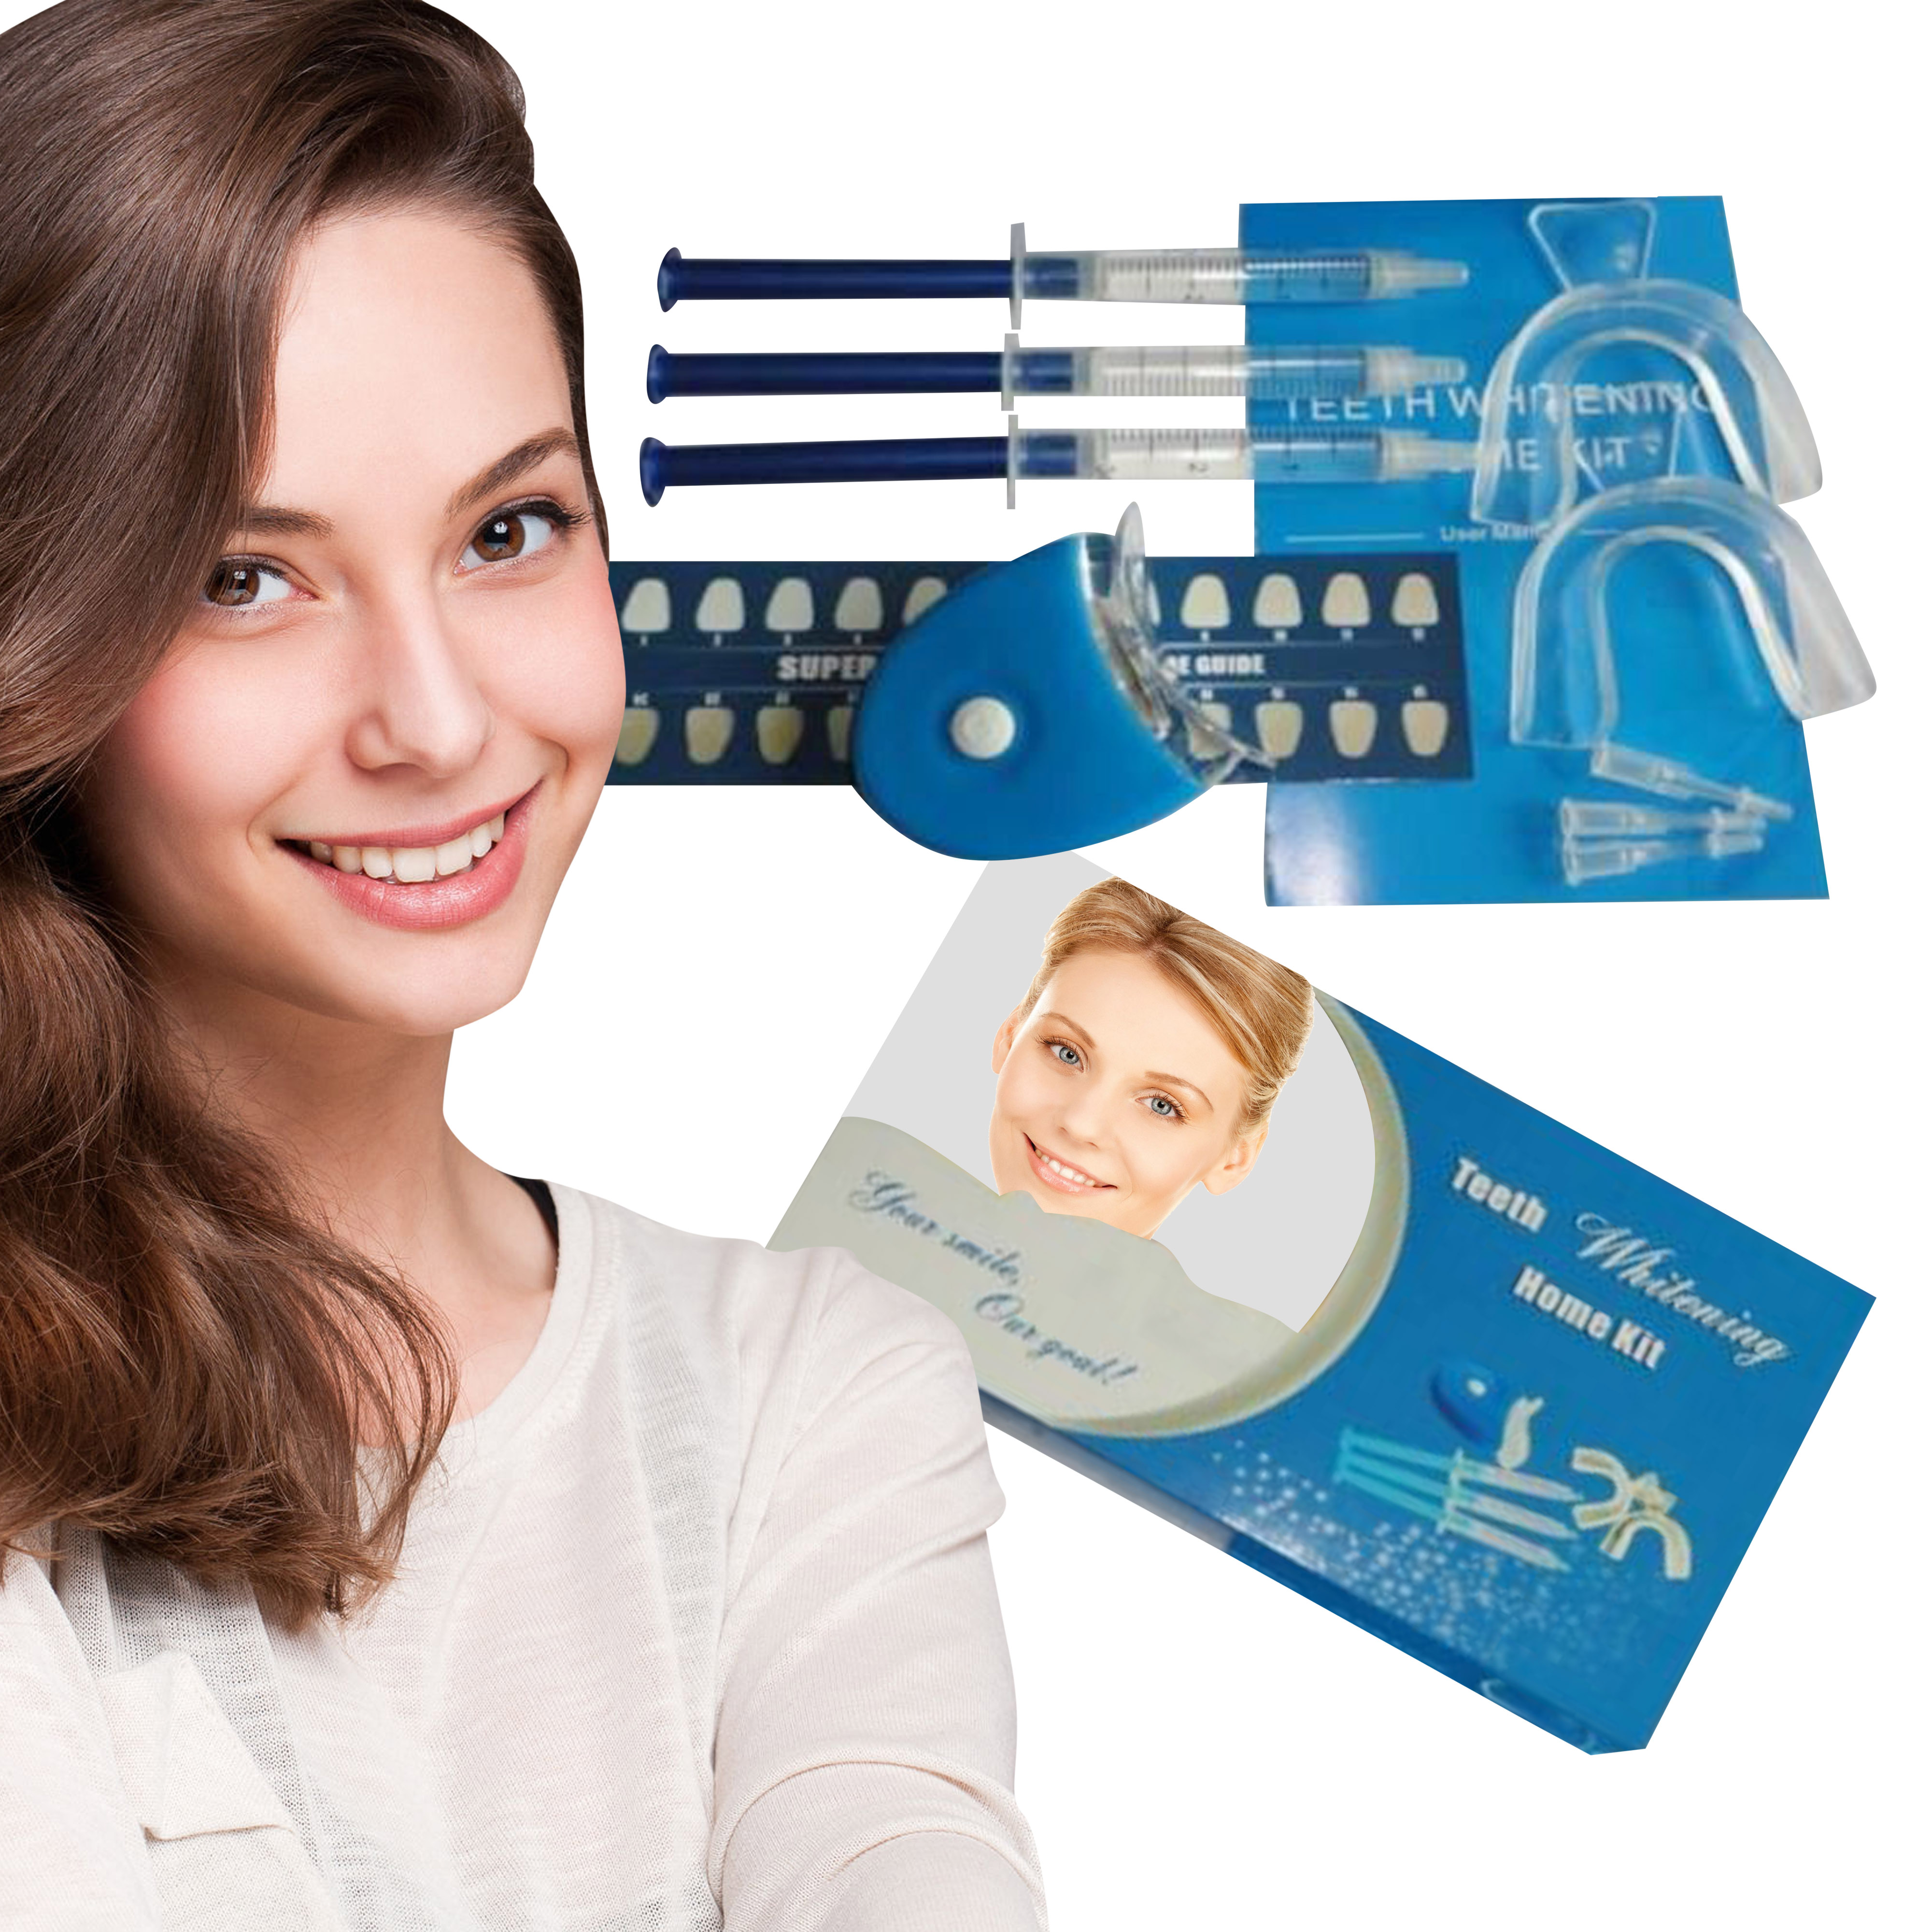 Whitening Gel And Led Light Teeth Whitening Home Kit Redeem Source